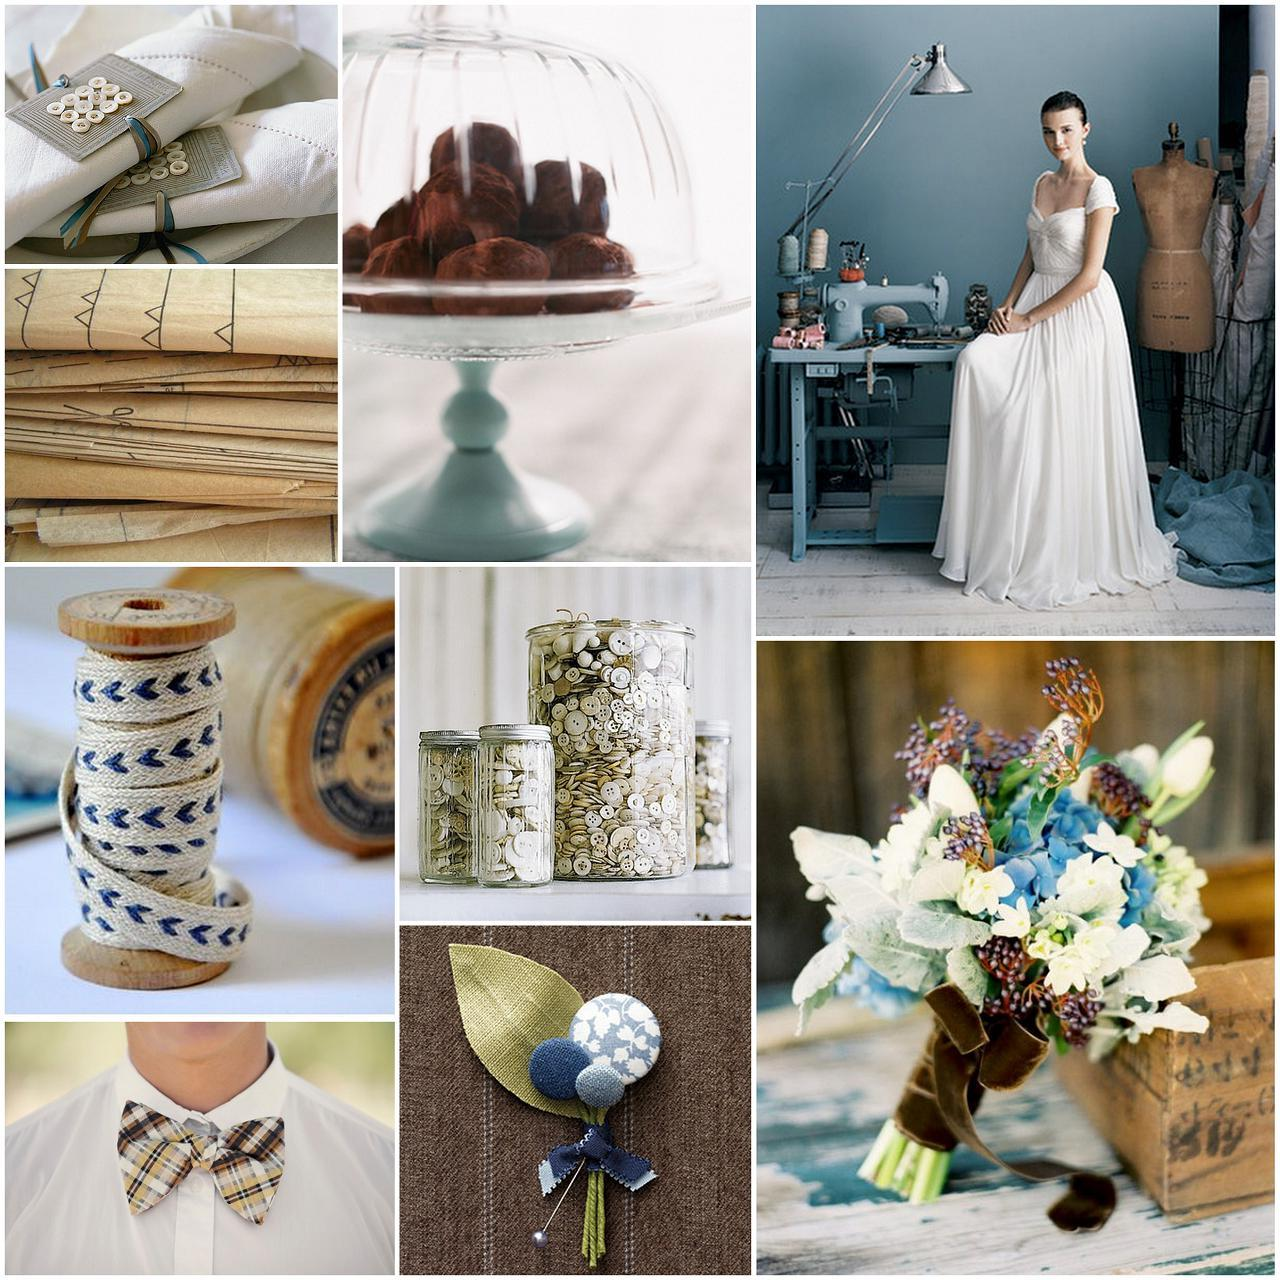 Very Low Budget Wedding: Gonul's Blog: Low Budget Wedding Ideas